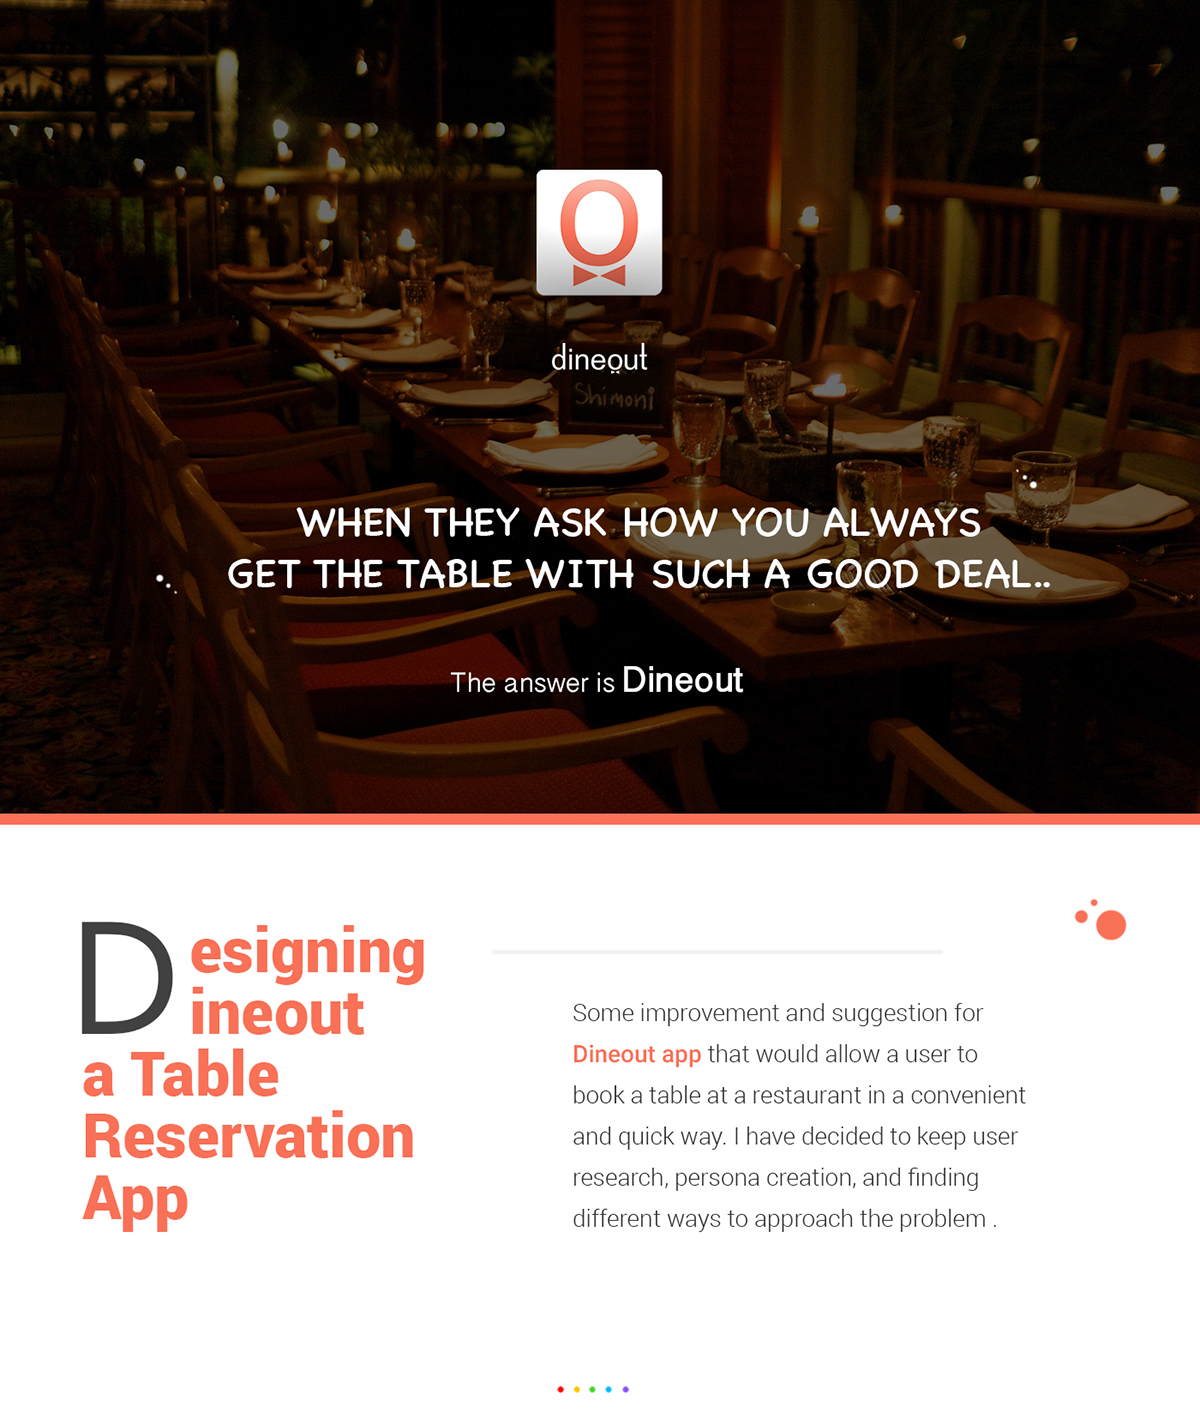 Designing Dineout A Table Reservation App On Wacom Gallery - Table reservation app